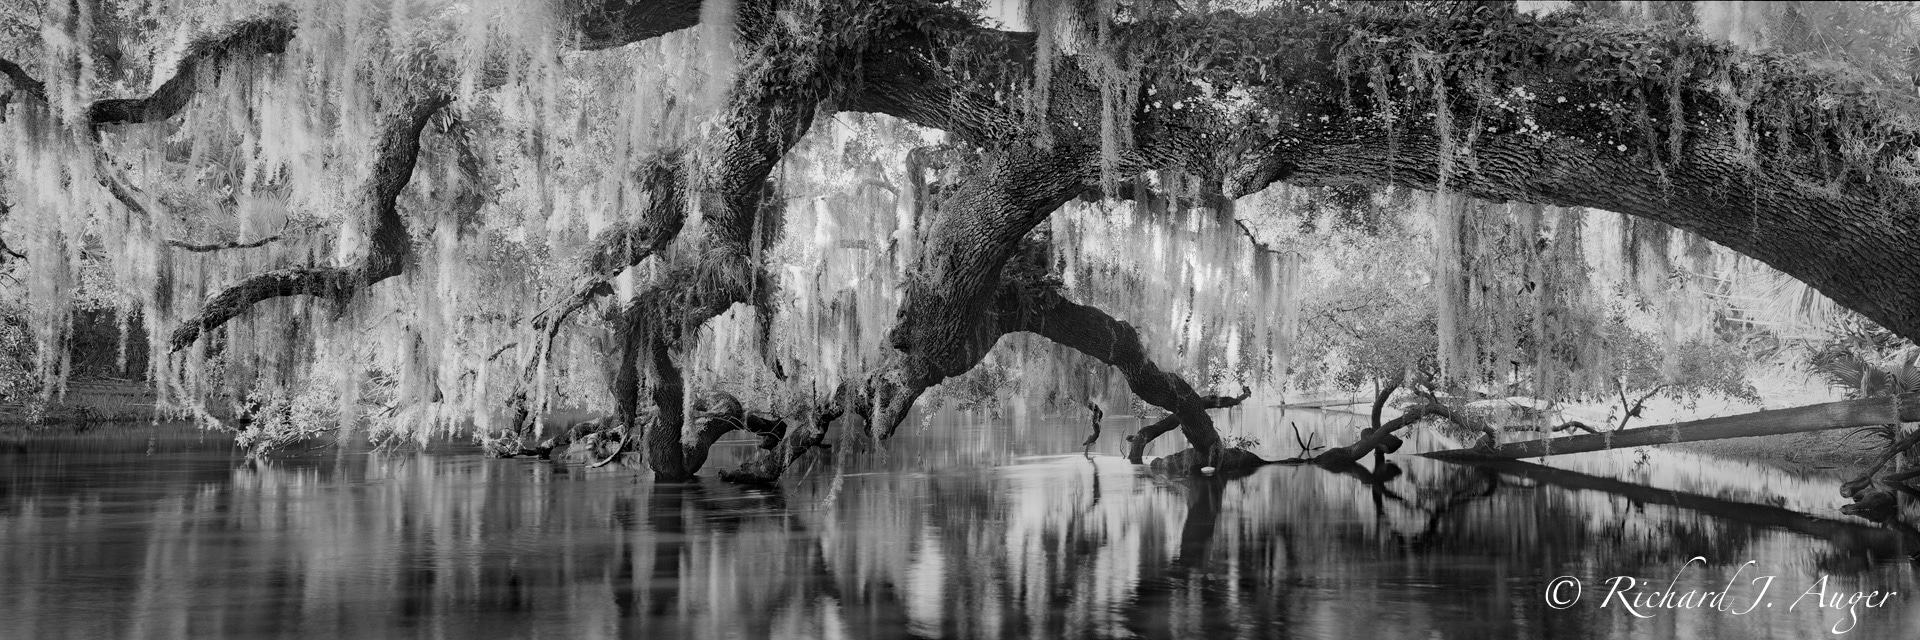 St Johns River, Florida, Oak Tree, Swamp, Moss, Black and White, Panorama, Photographer